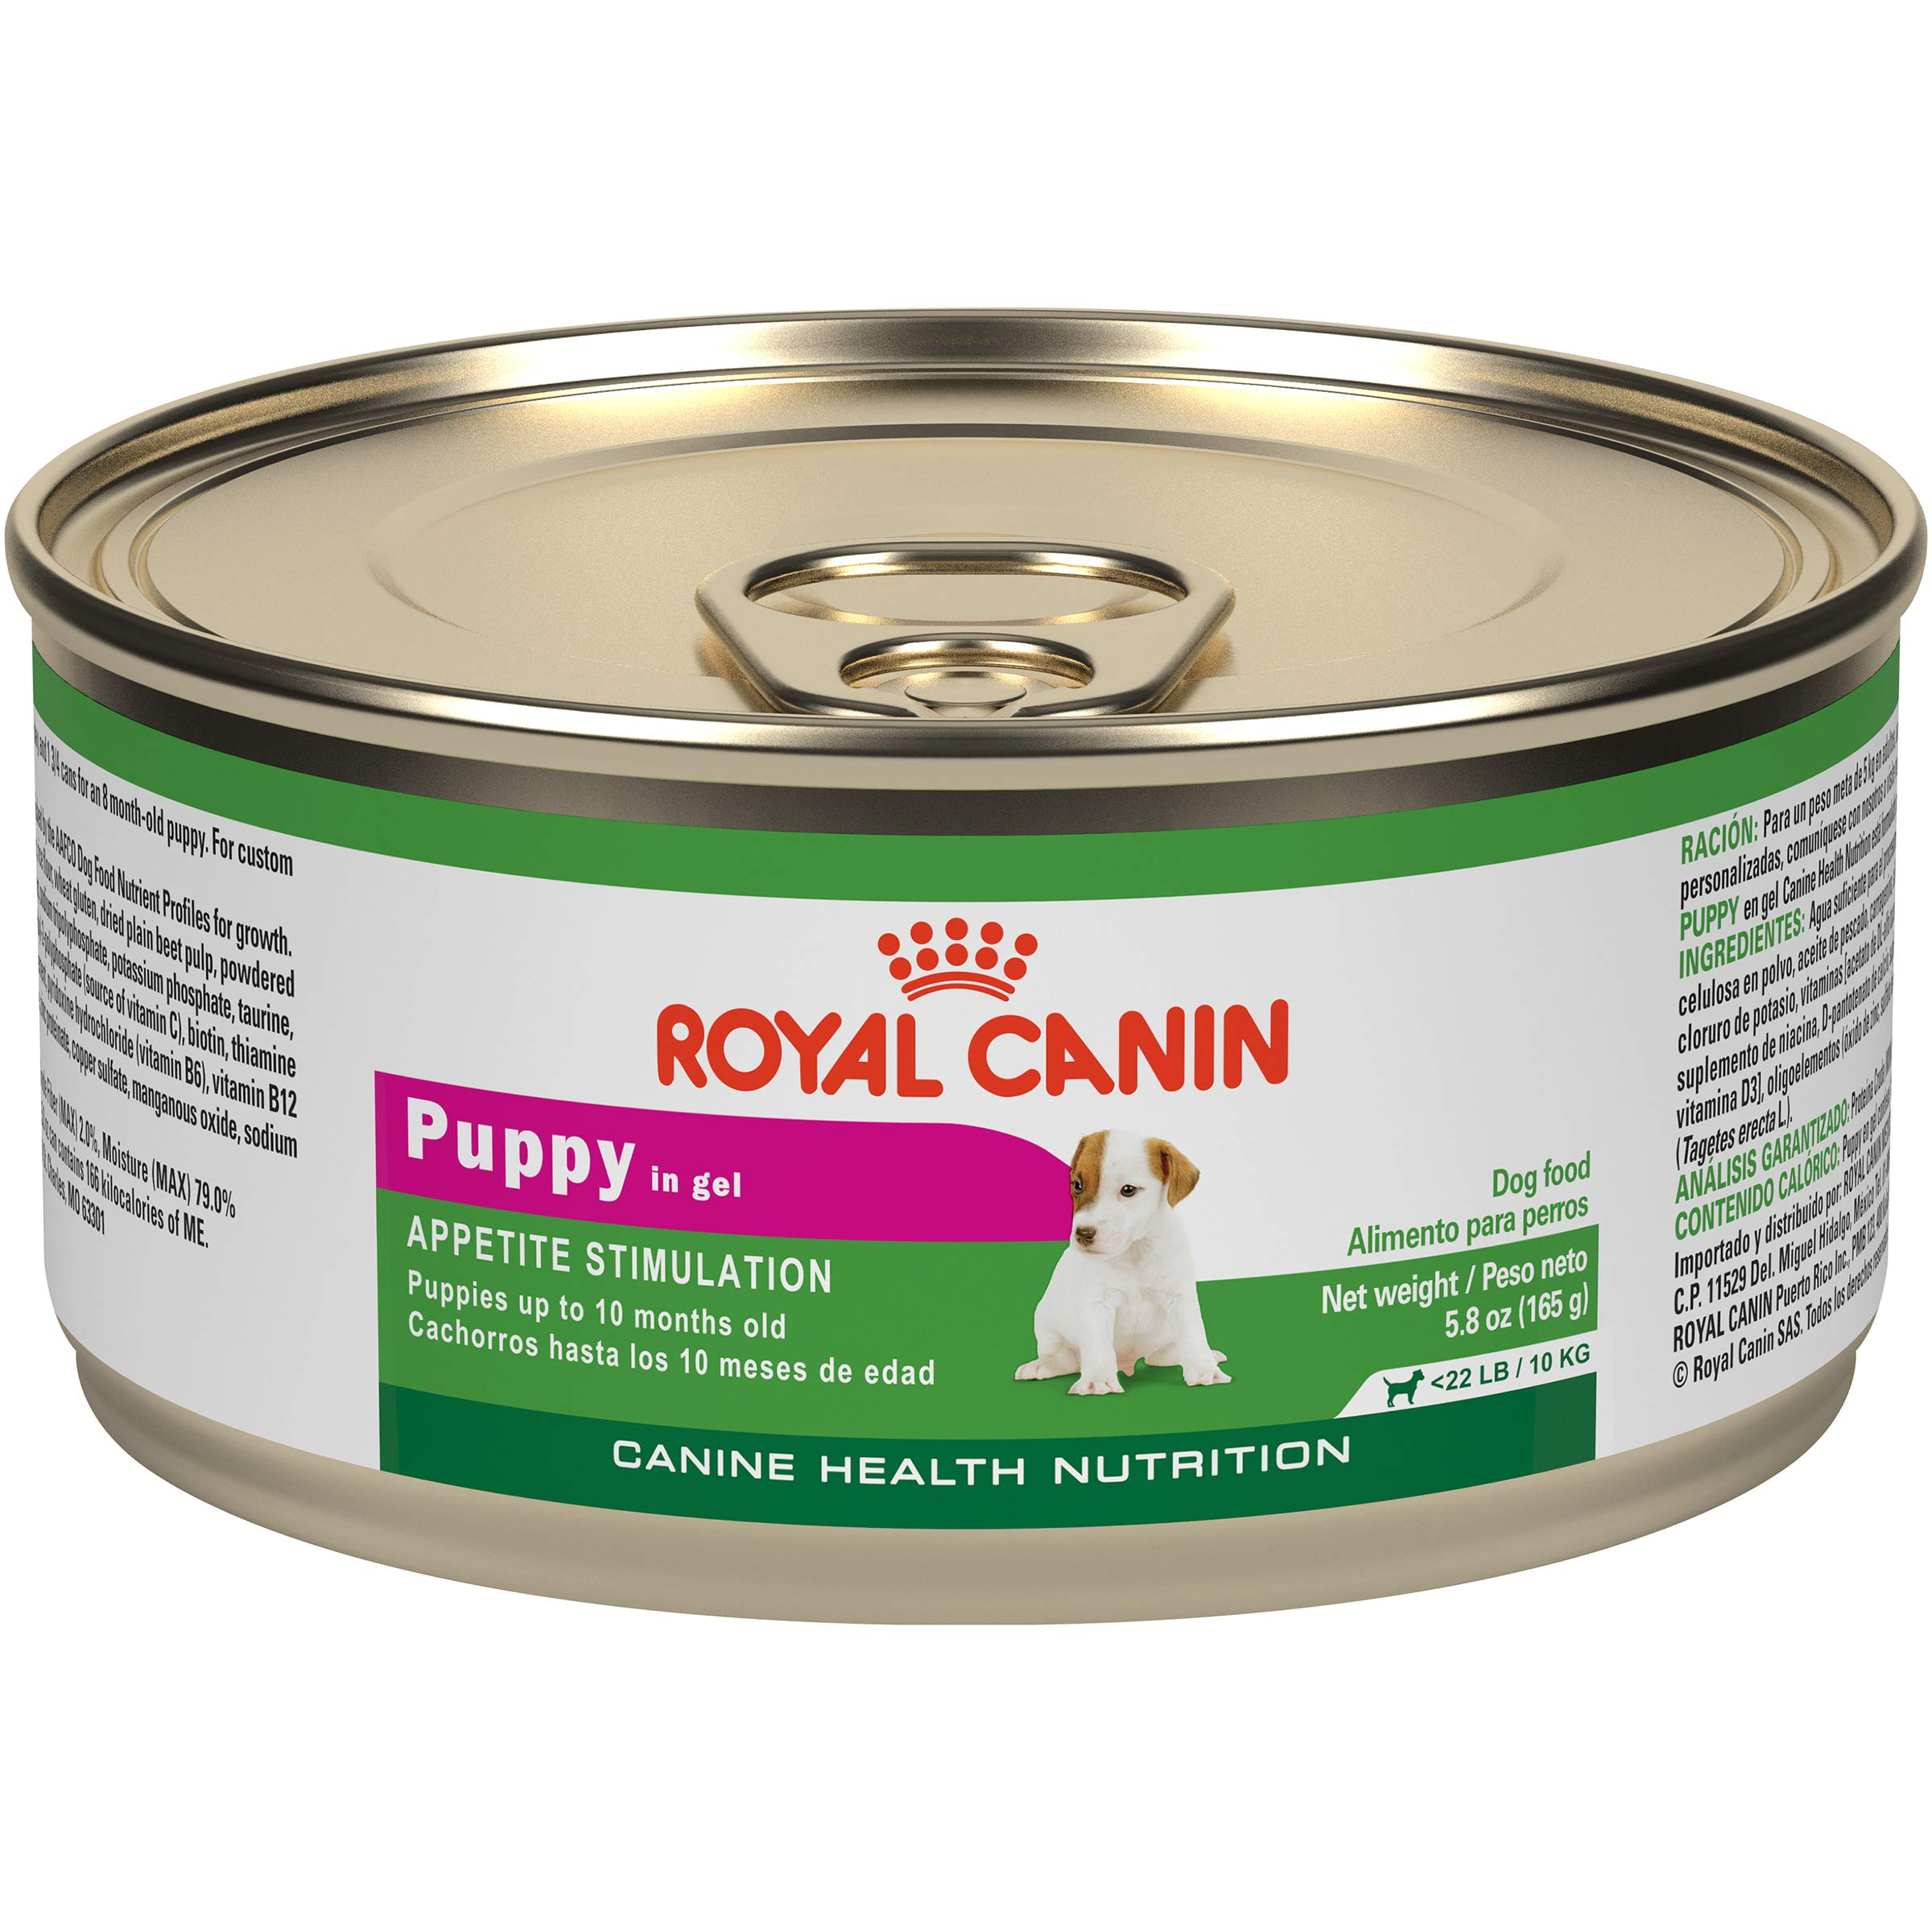 Royal Canin Canine Health Nutrition Puppy Canned Dog Food, 5.8 oz (Pack of 24) by Royal Canin